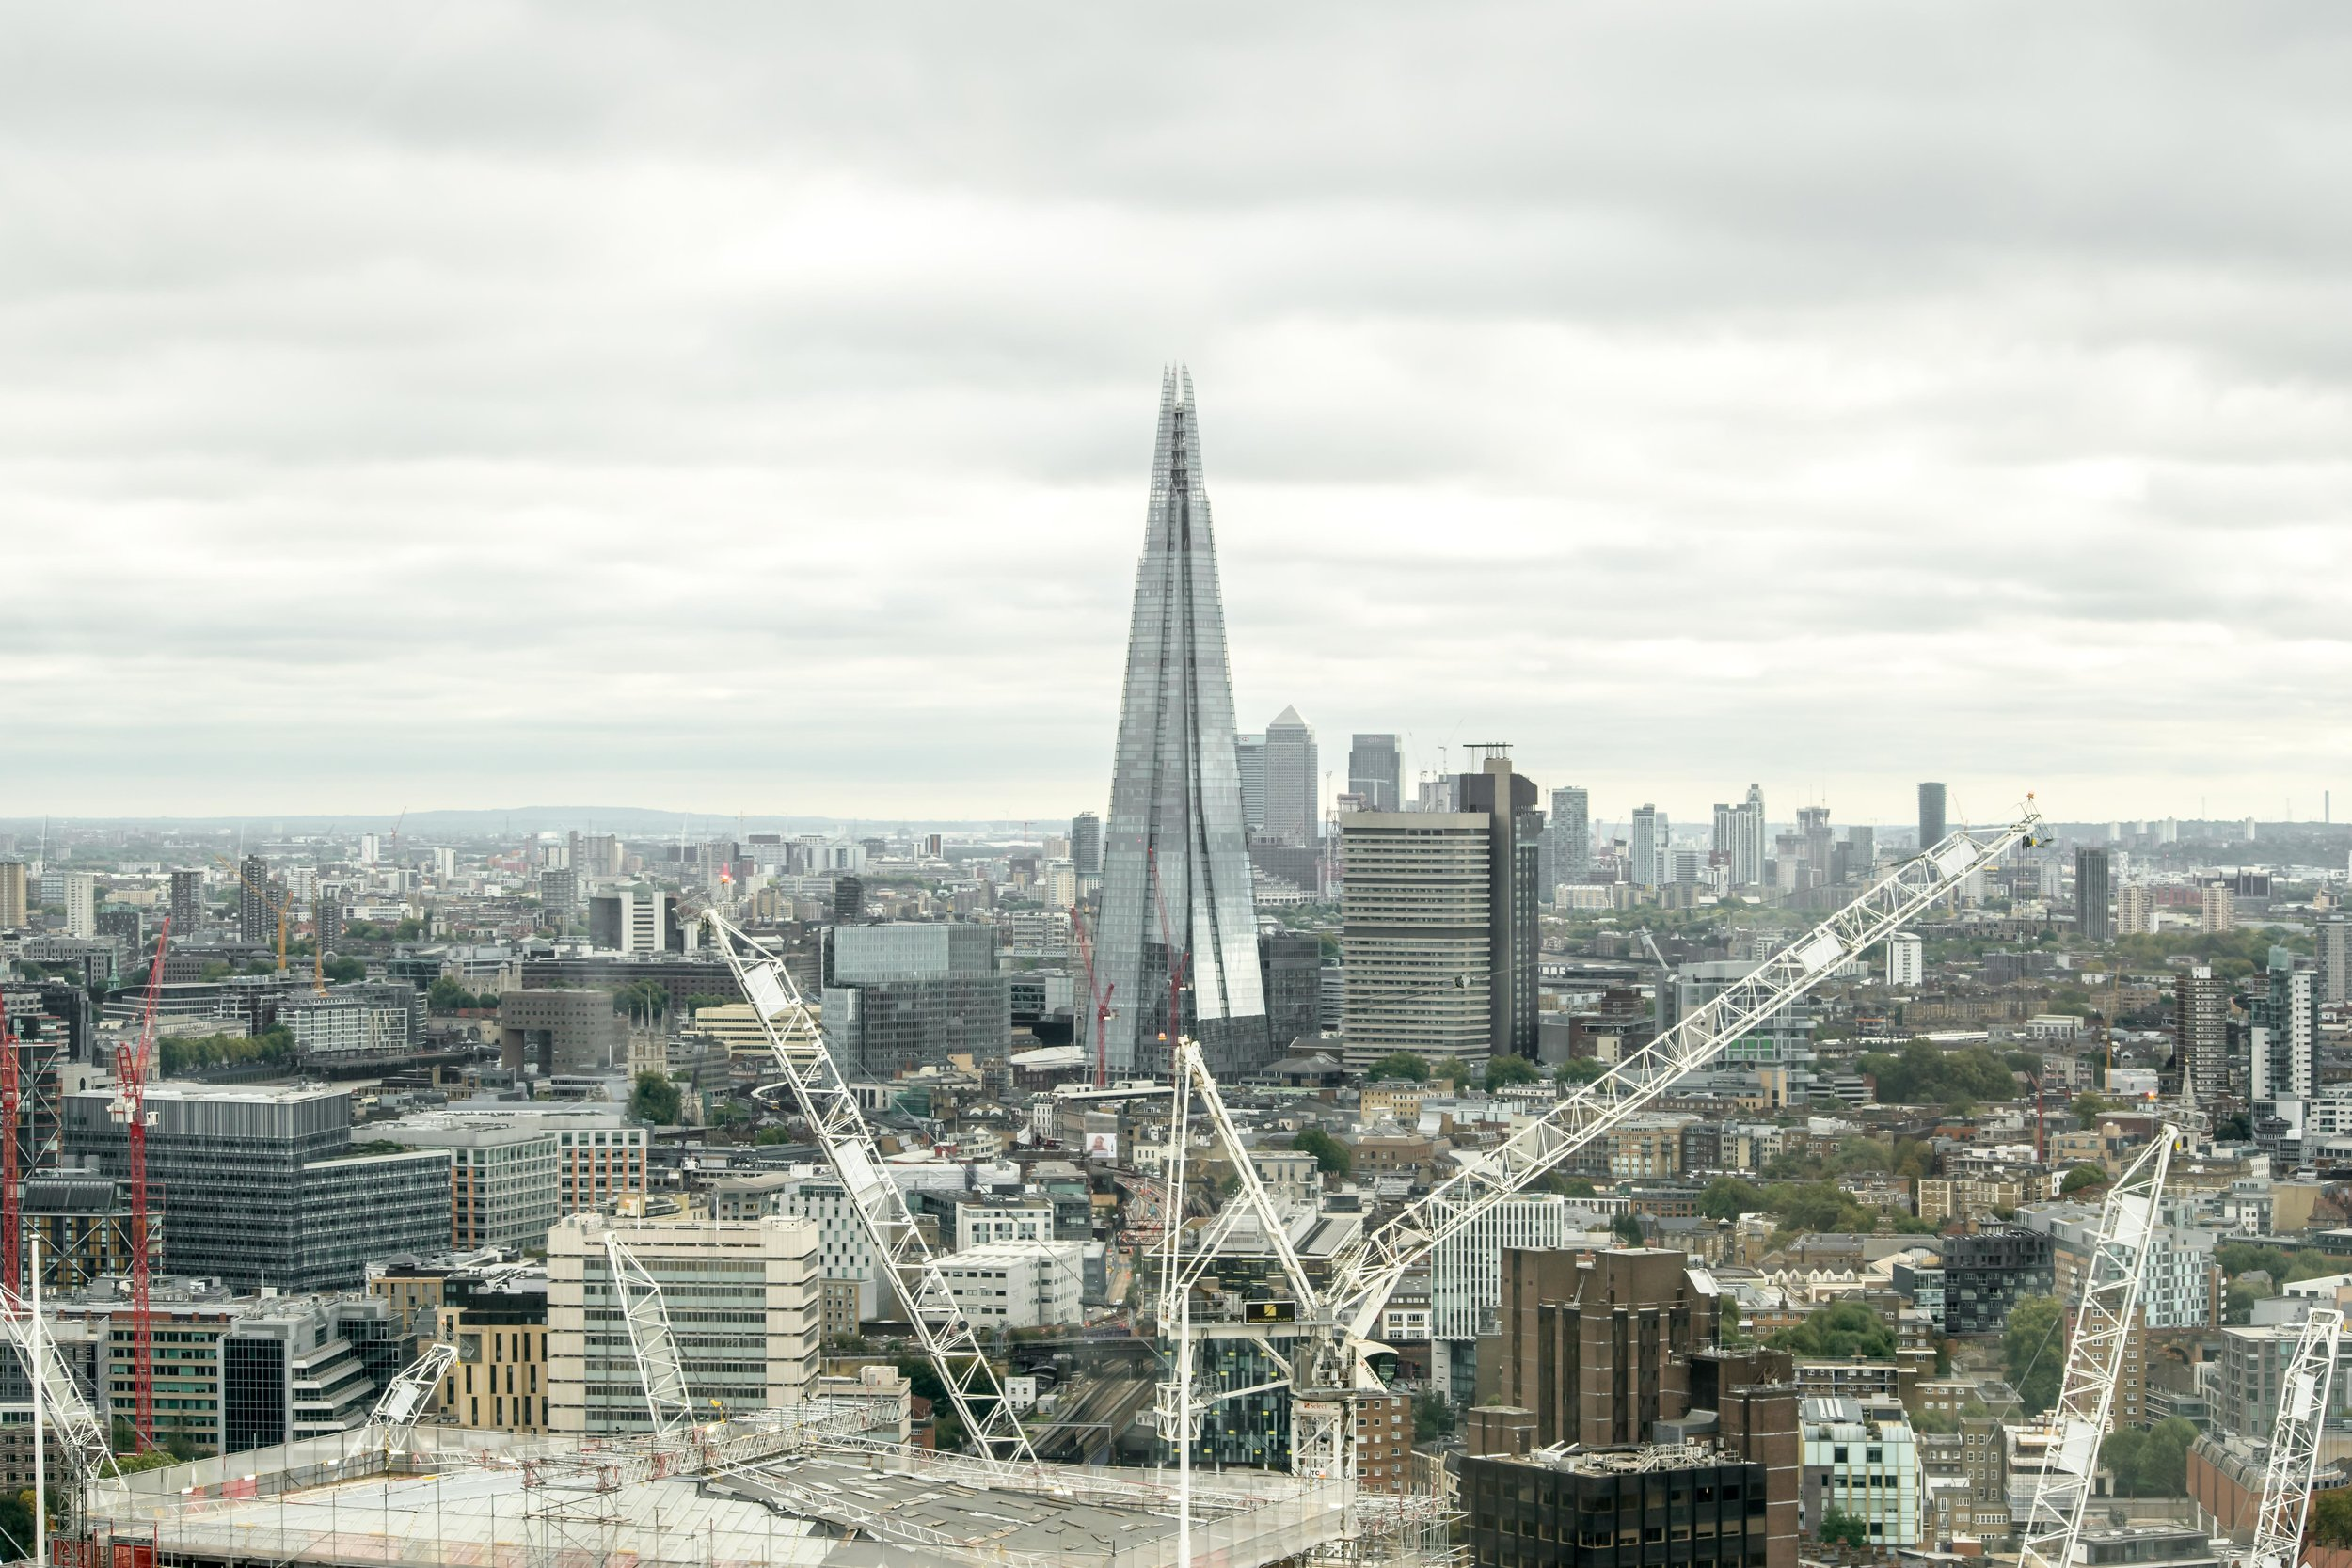 The Shard as seen from the London Eye